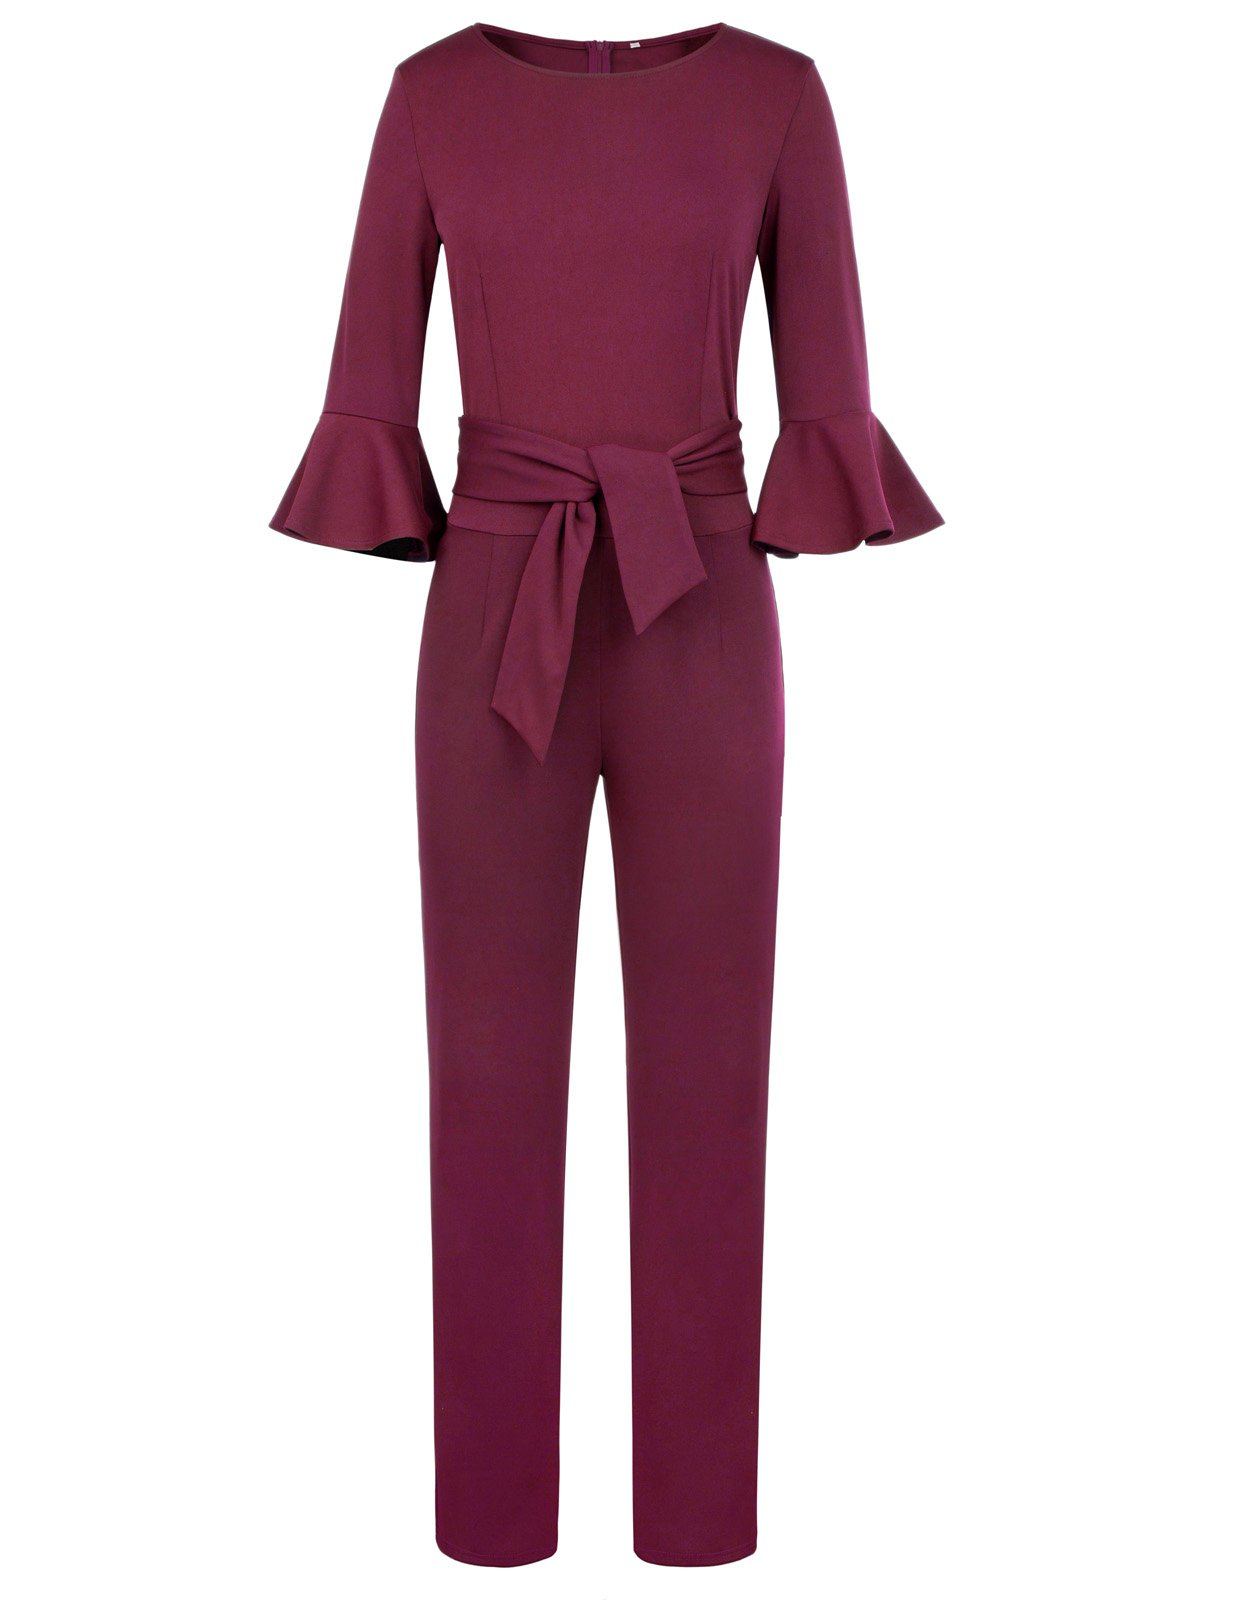 Women Short Sleeve Business Jumpsuit with Belt Solid Color Size 2XL Burgundy